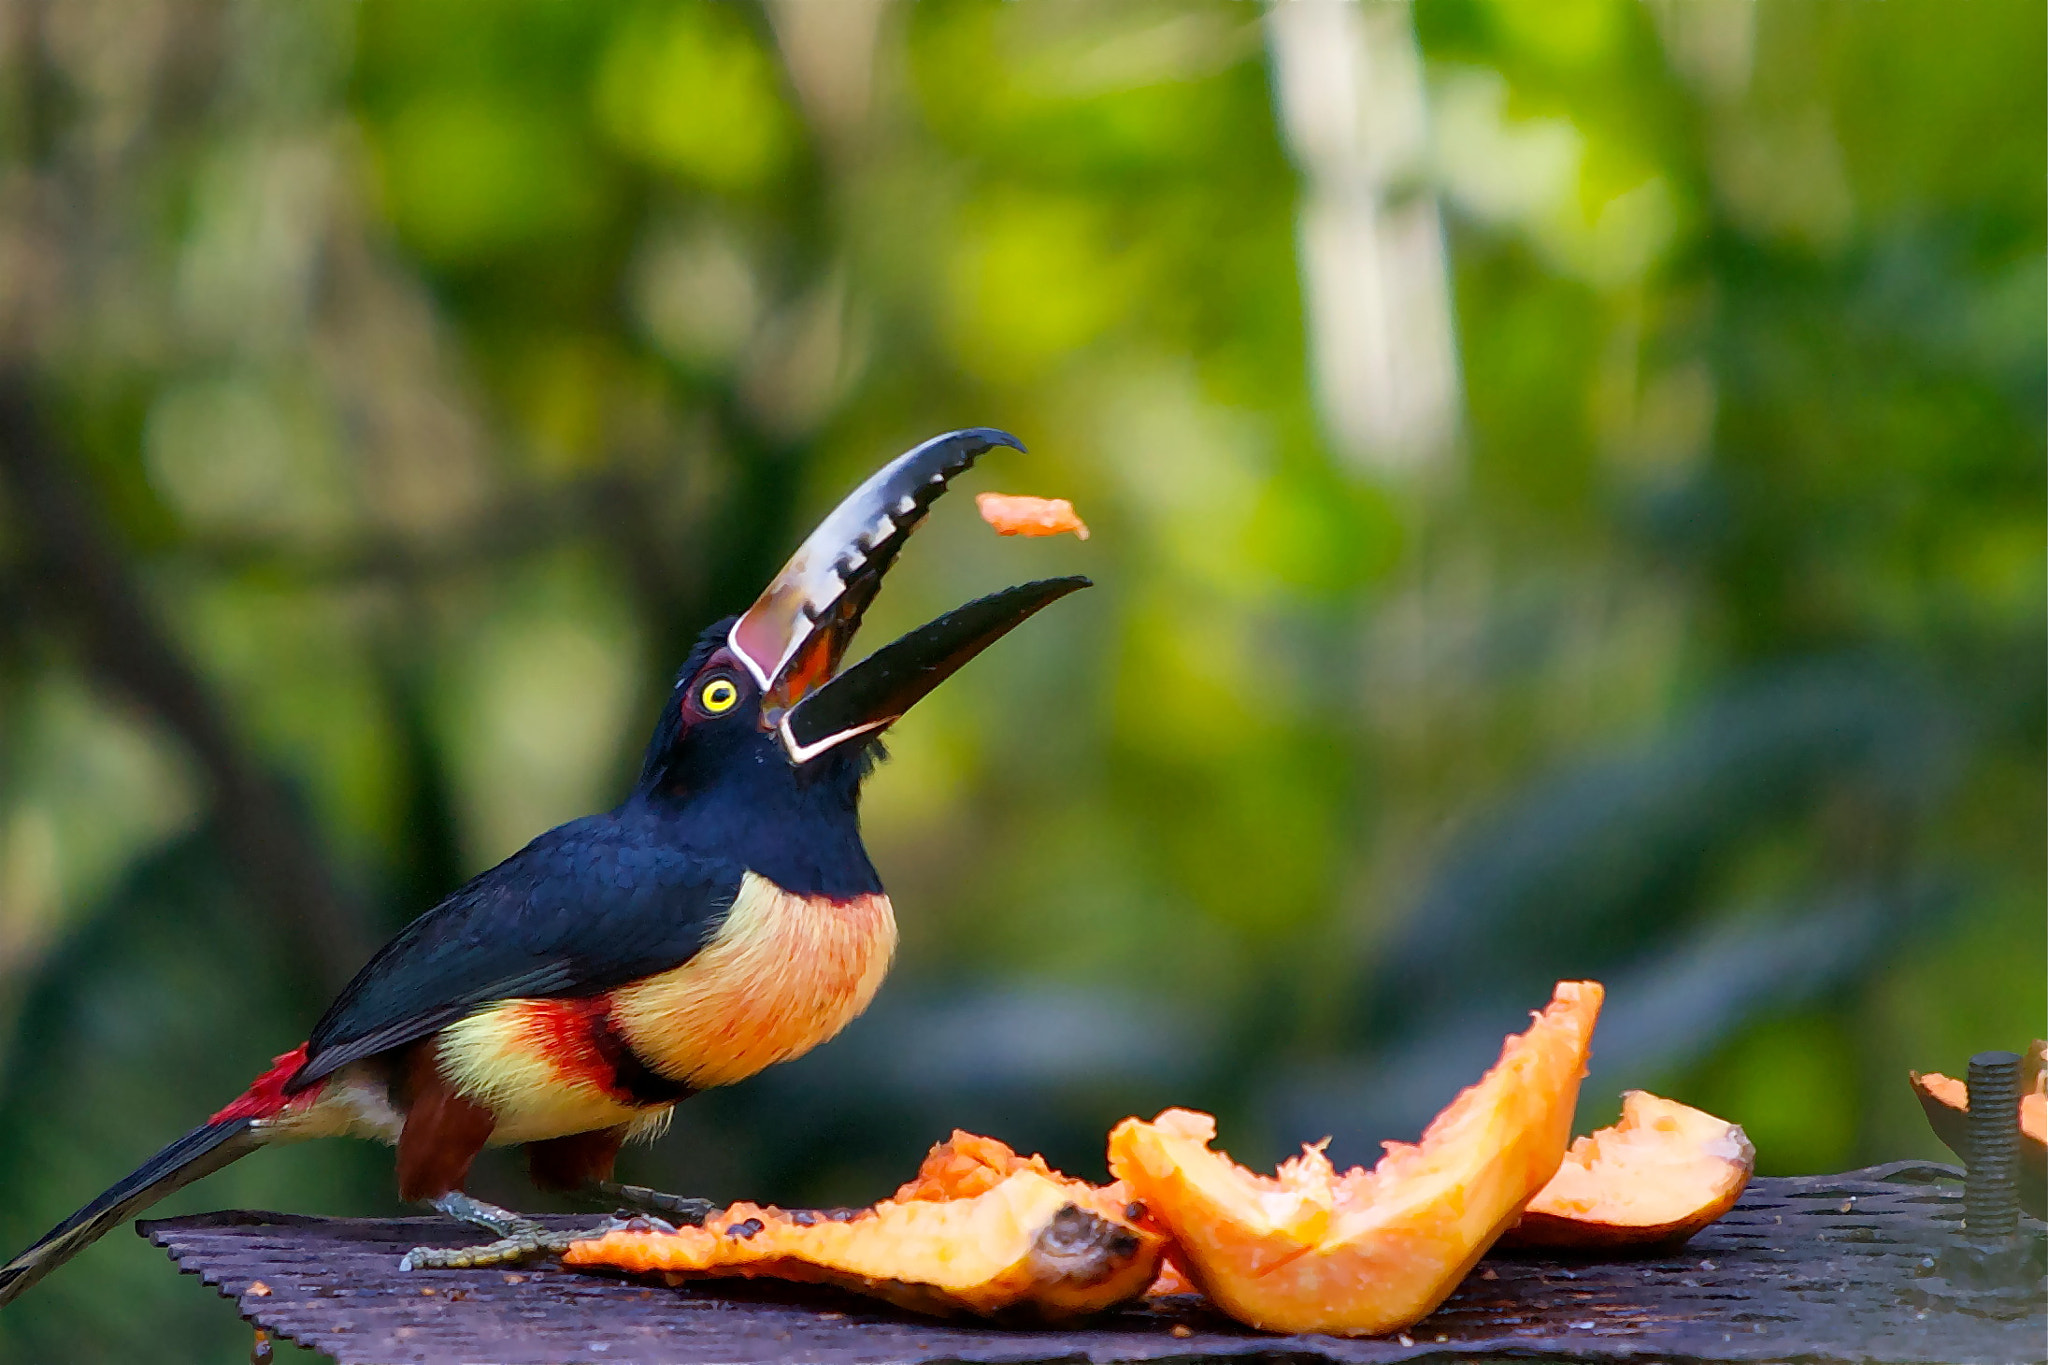 Photograph Breakfast Companion by Michael Downey on 500px